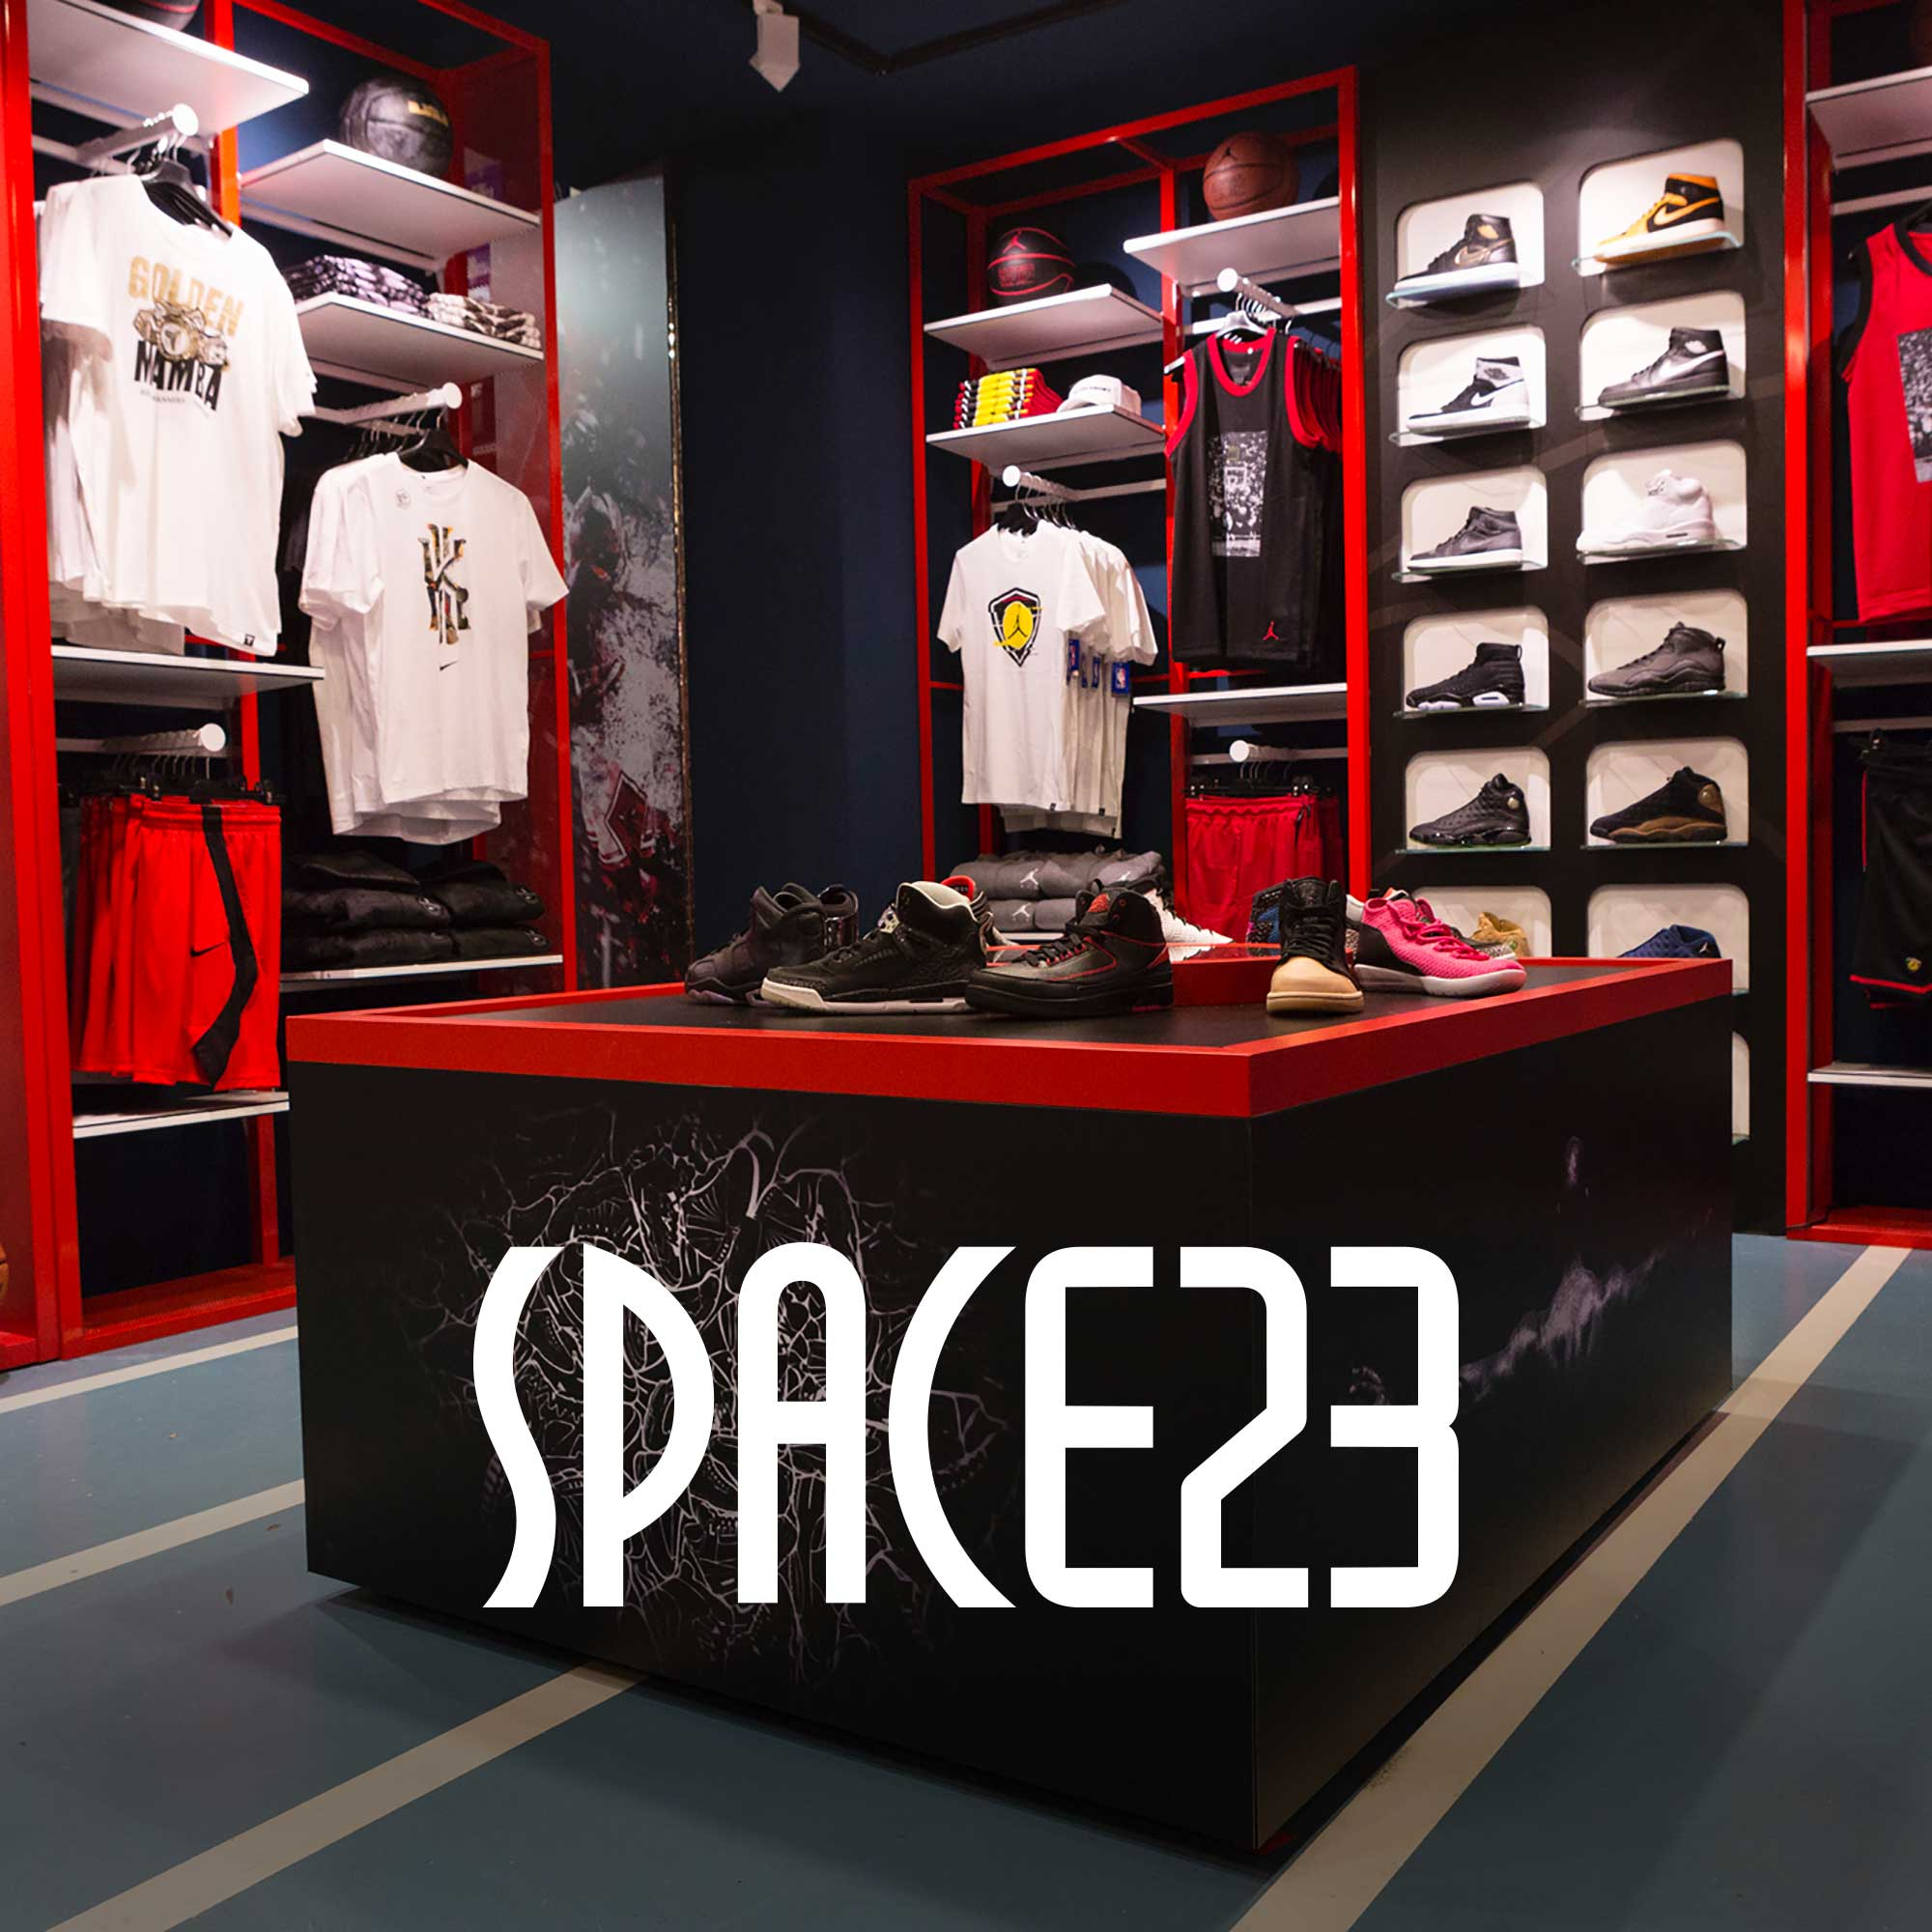 Space23  becd3750fb3